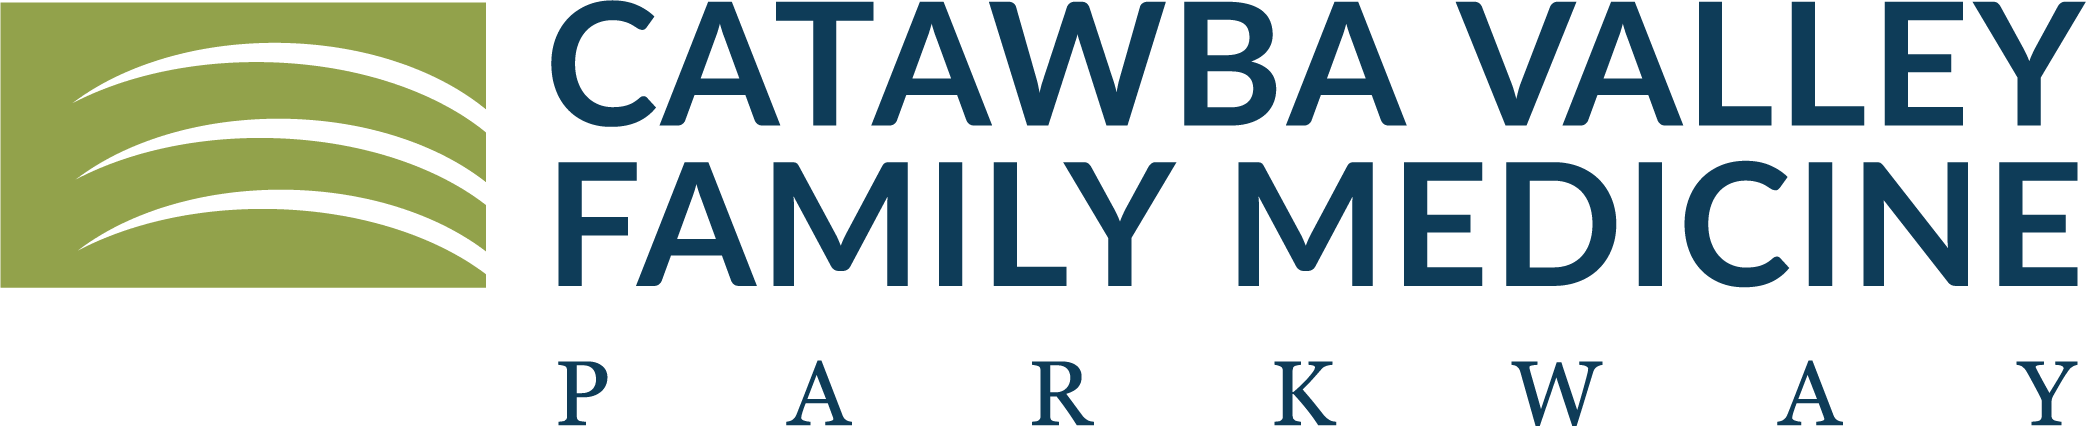 Catawba Valley Family Medicine - Parkway